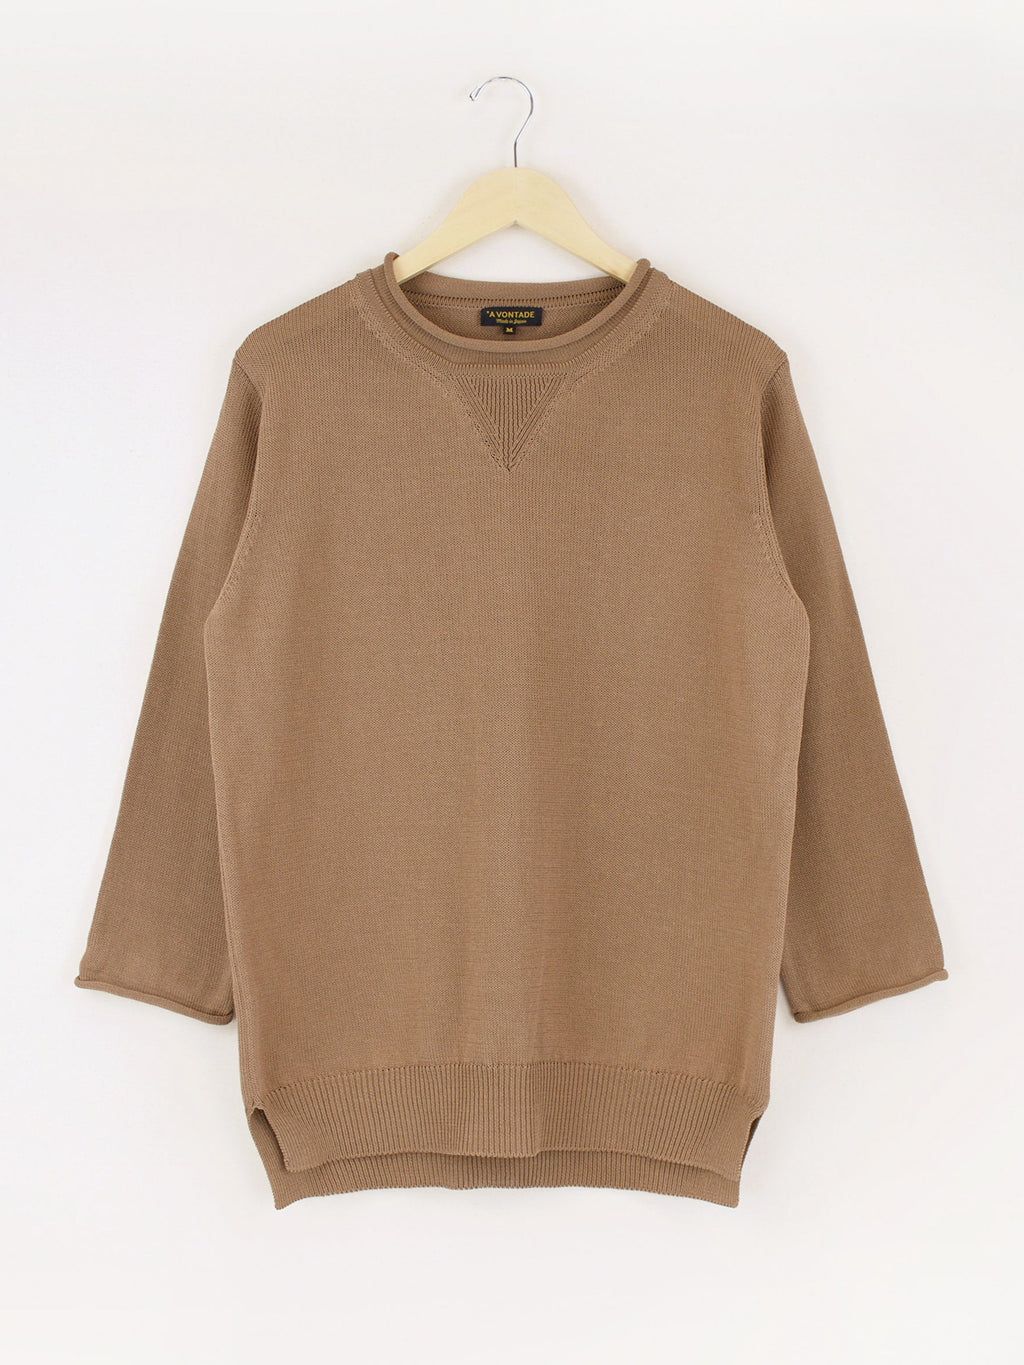 Namu Shop - A Vontade Silkete Cotton Knit Rollneck Sweater